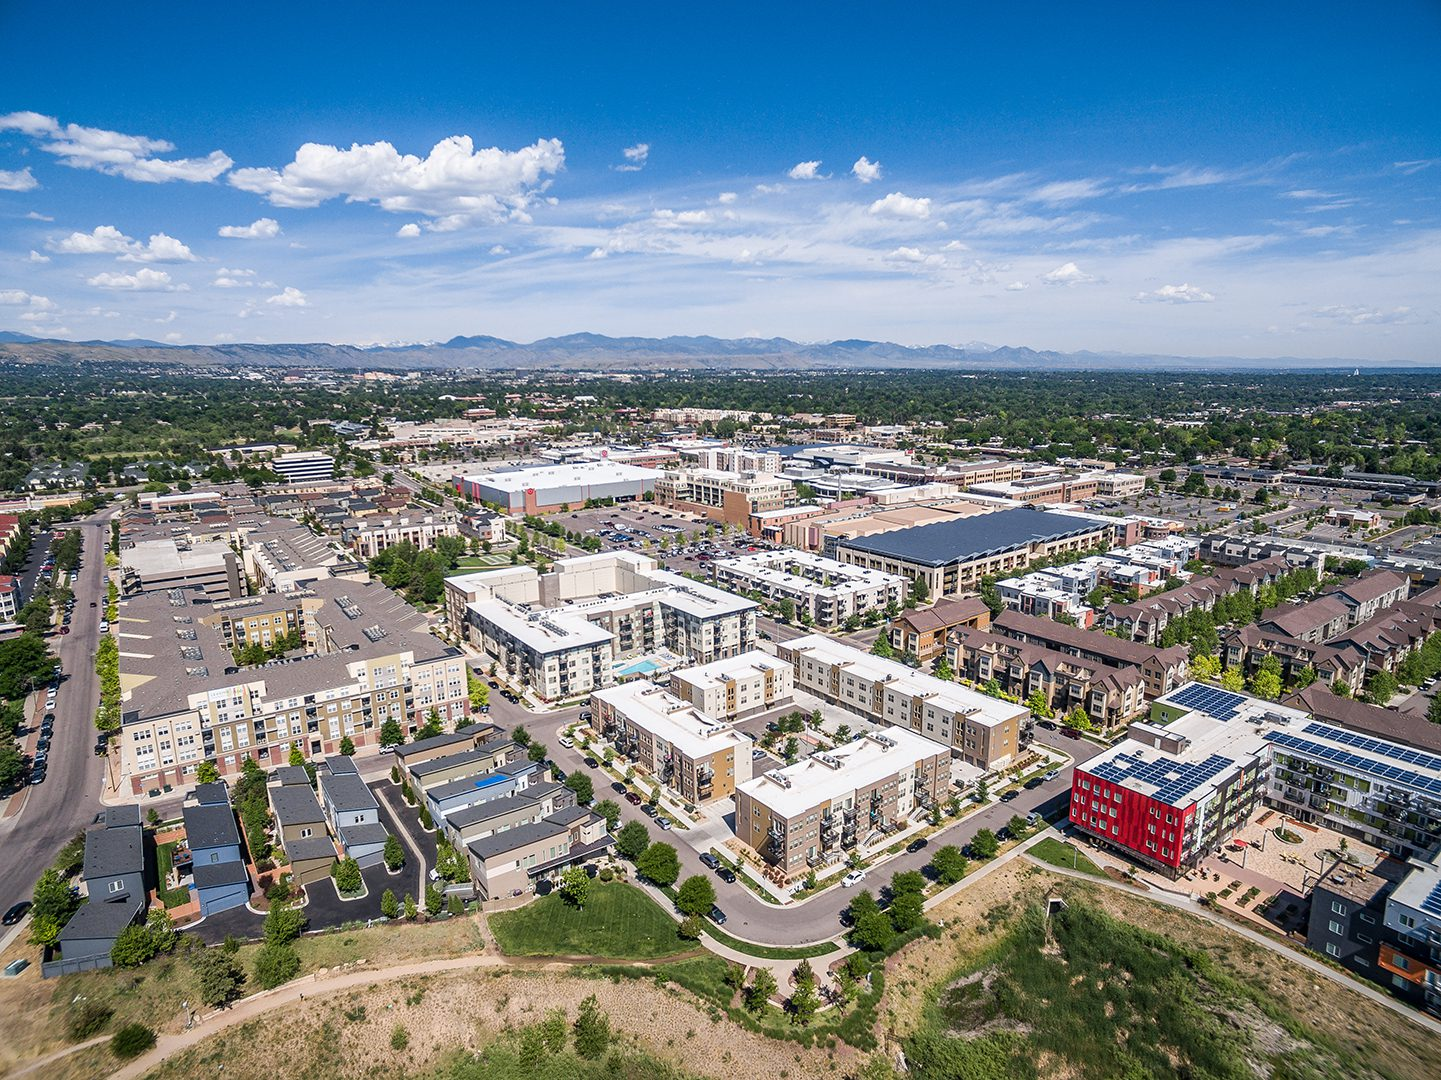 <p>Belmar reset the region's expectations about how our traditional suburban communities could be adapted to a more ecologically sustainable and human-scaled feature.</p>